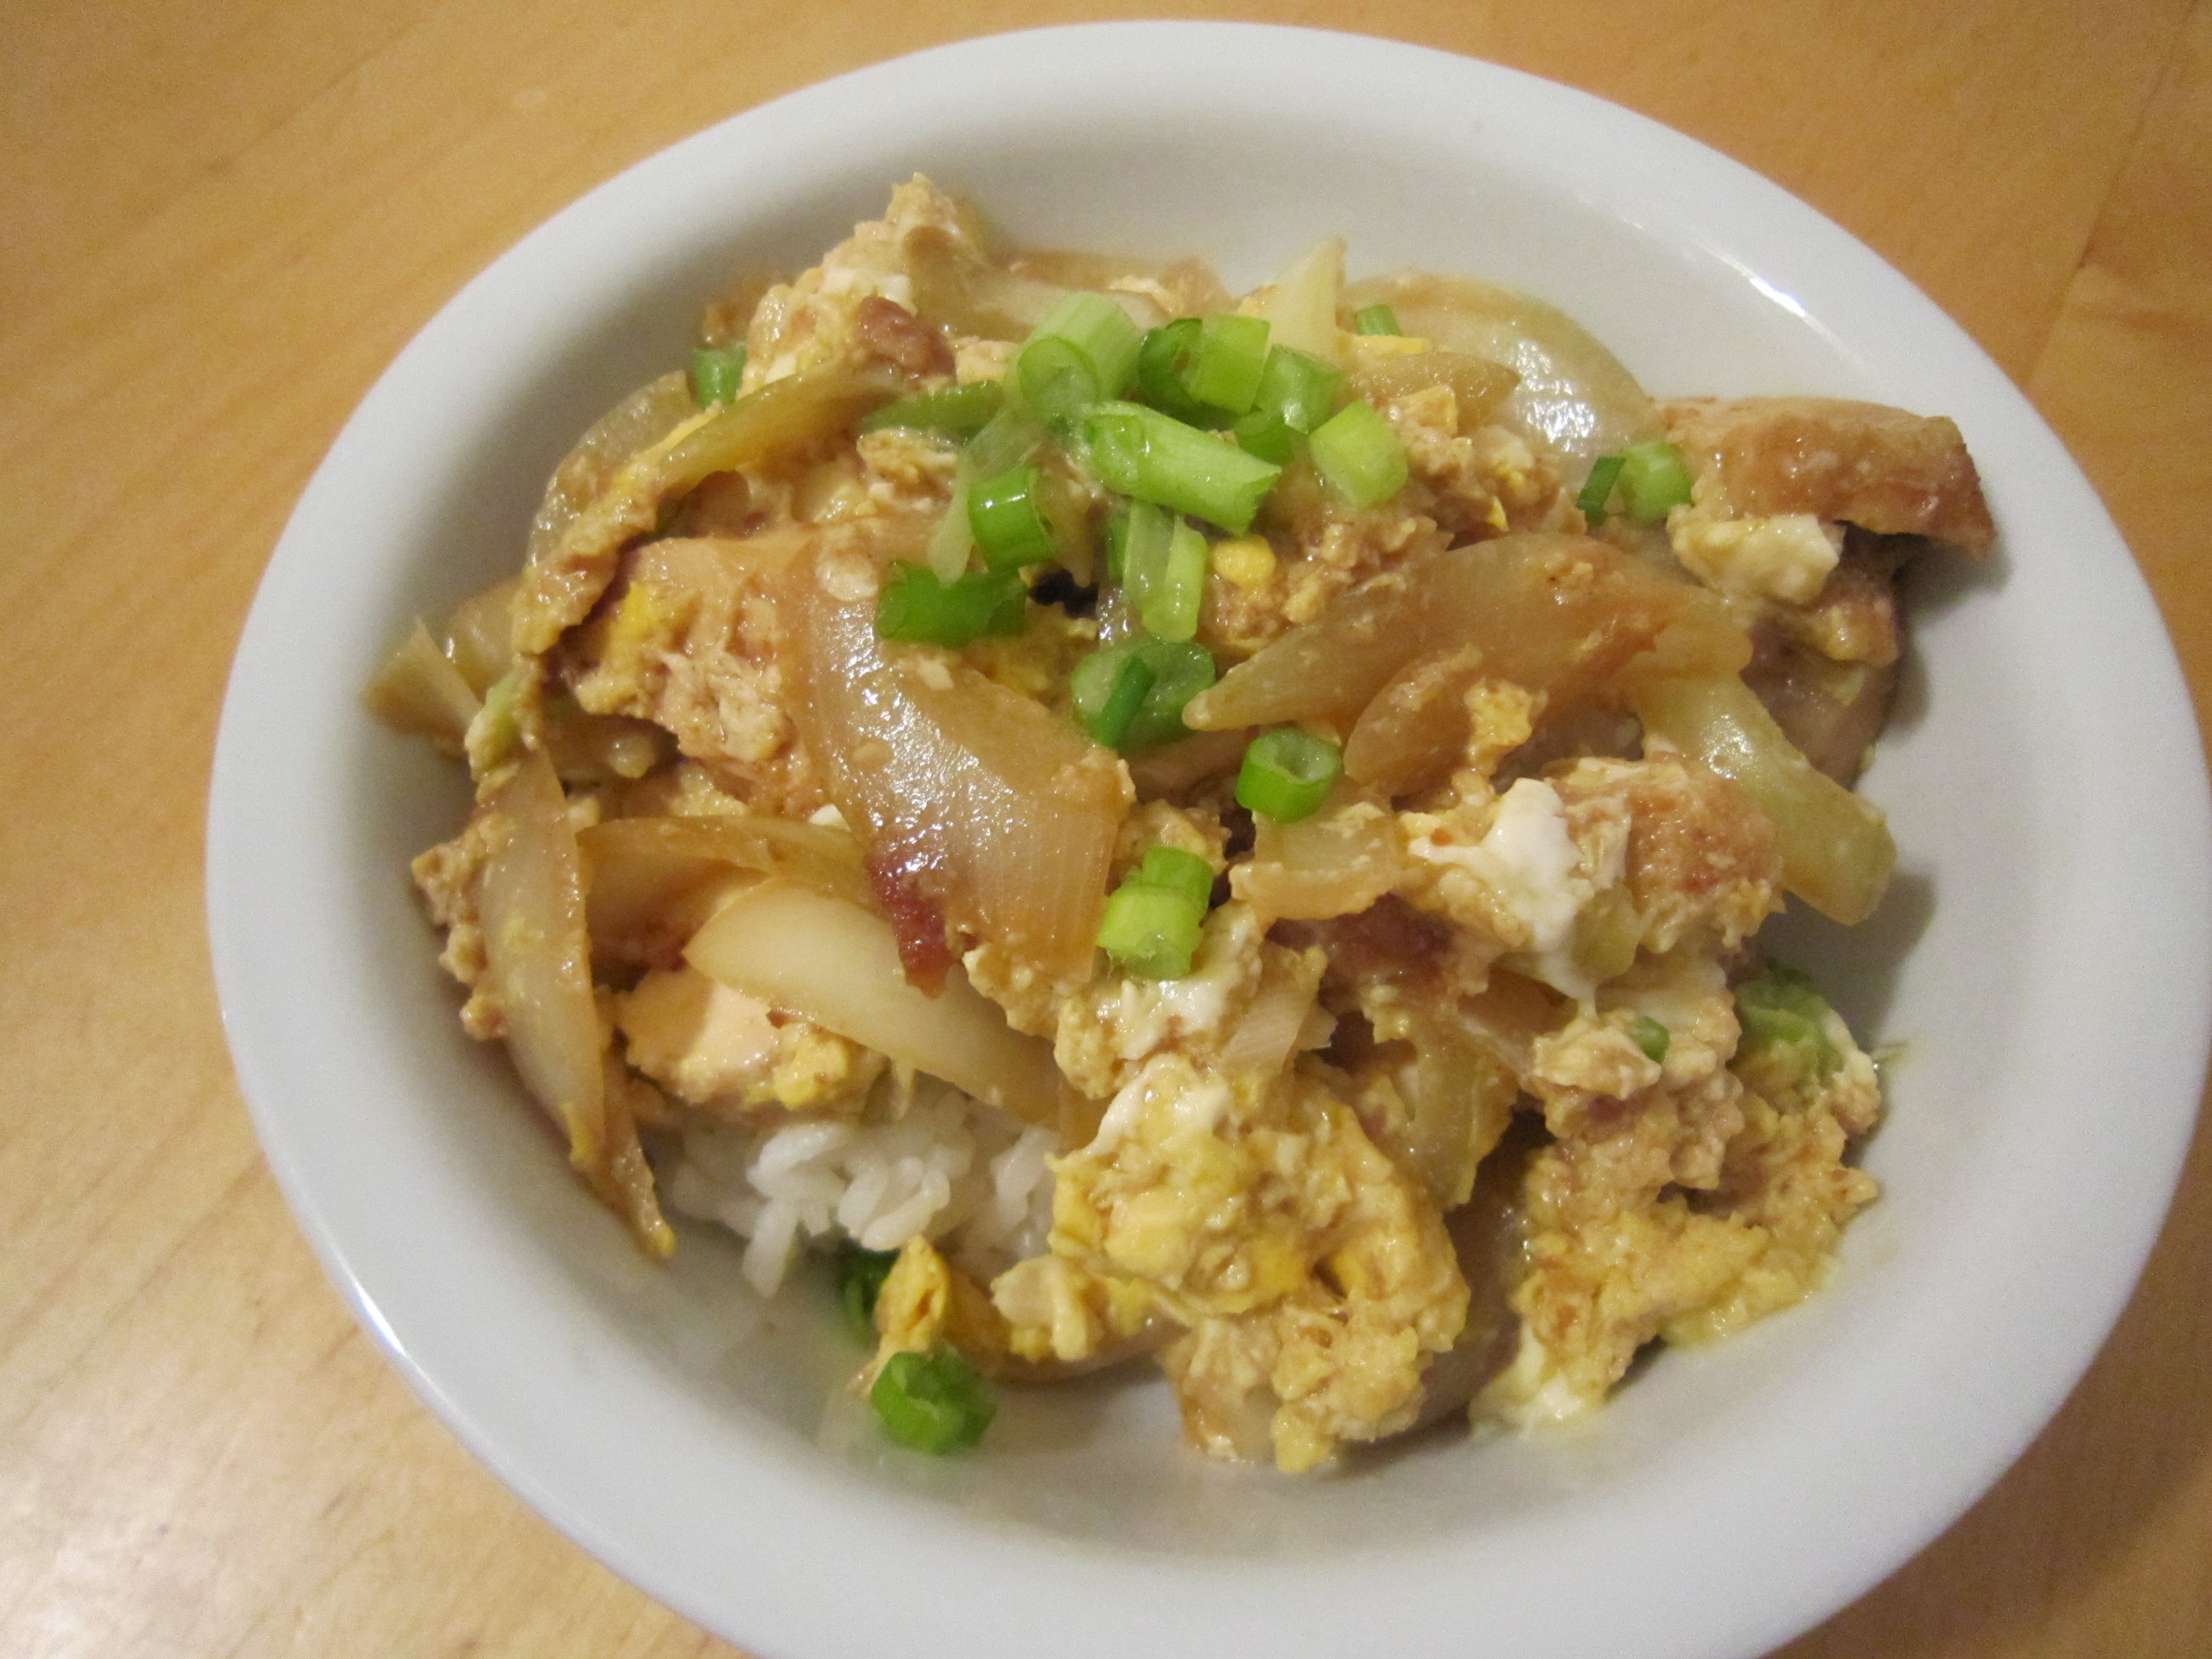 Oyako Donburi (Japanese Chicken & Egg Bowl)